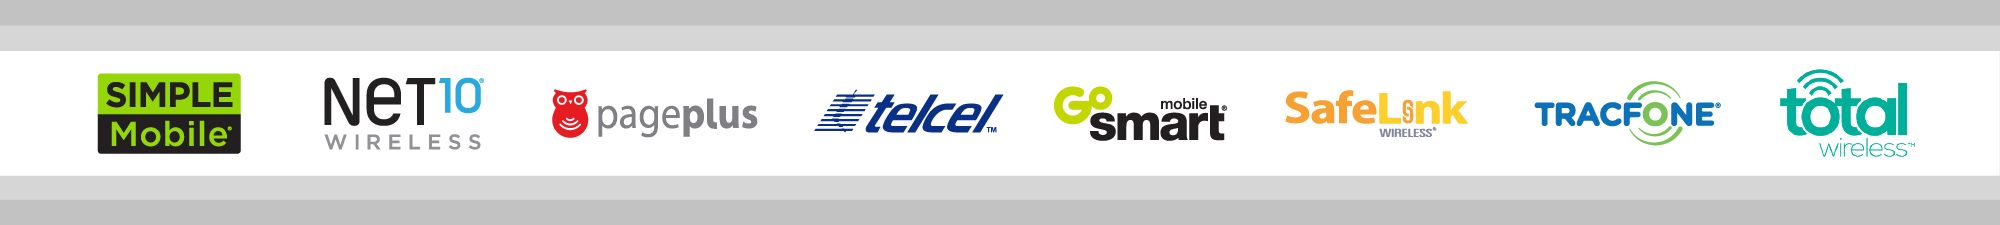 Tracfone Exclusive Brands